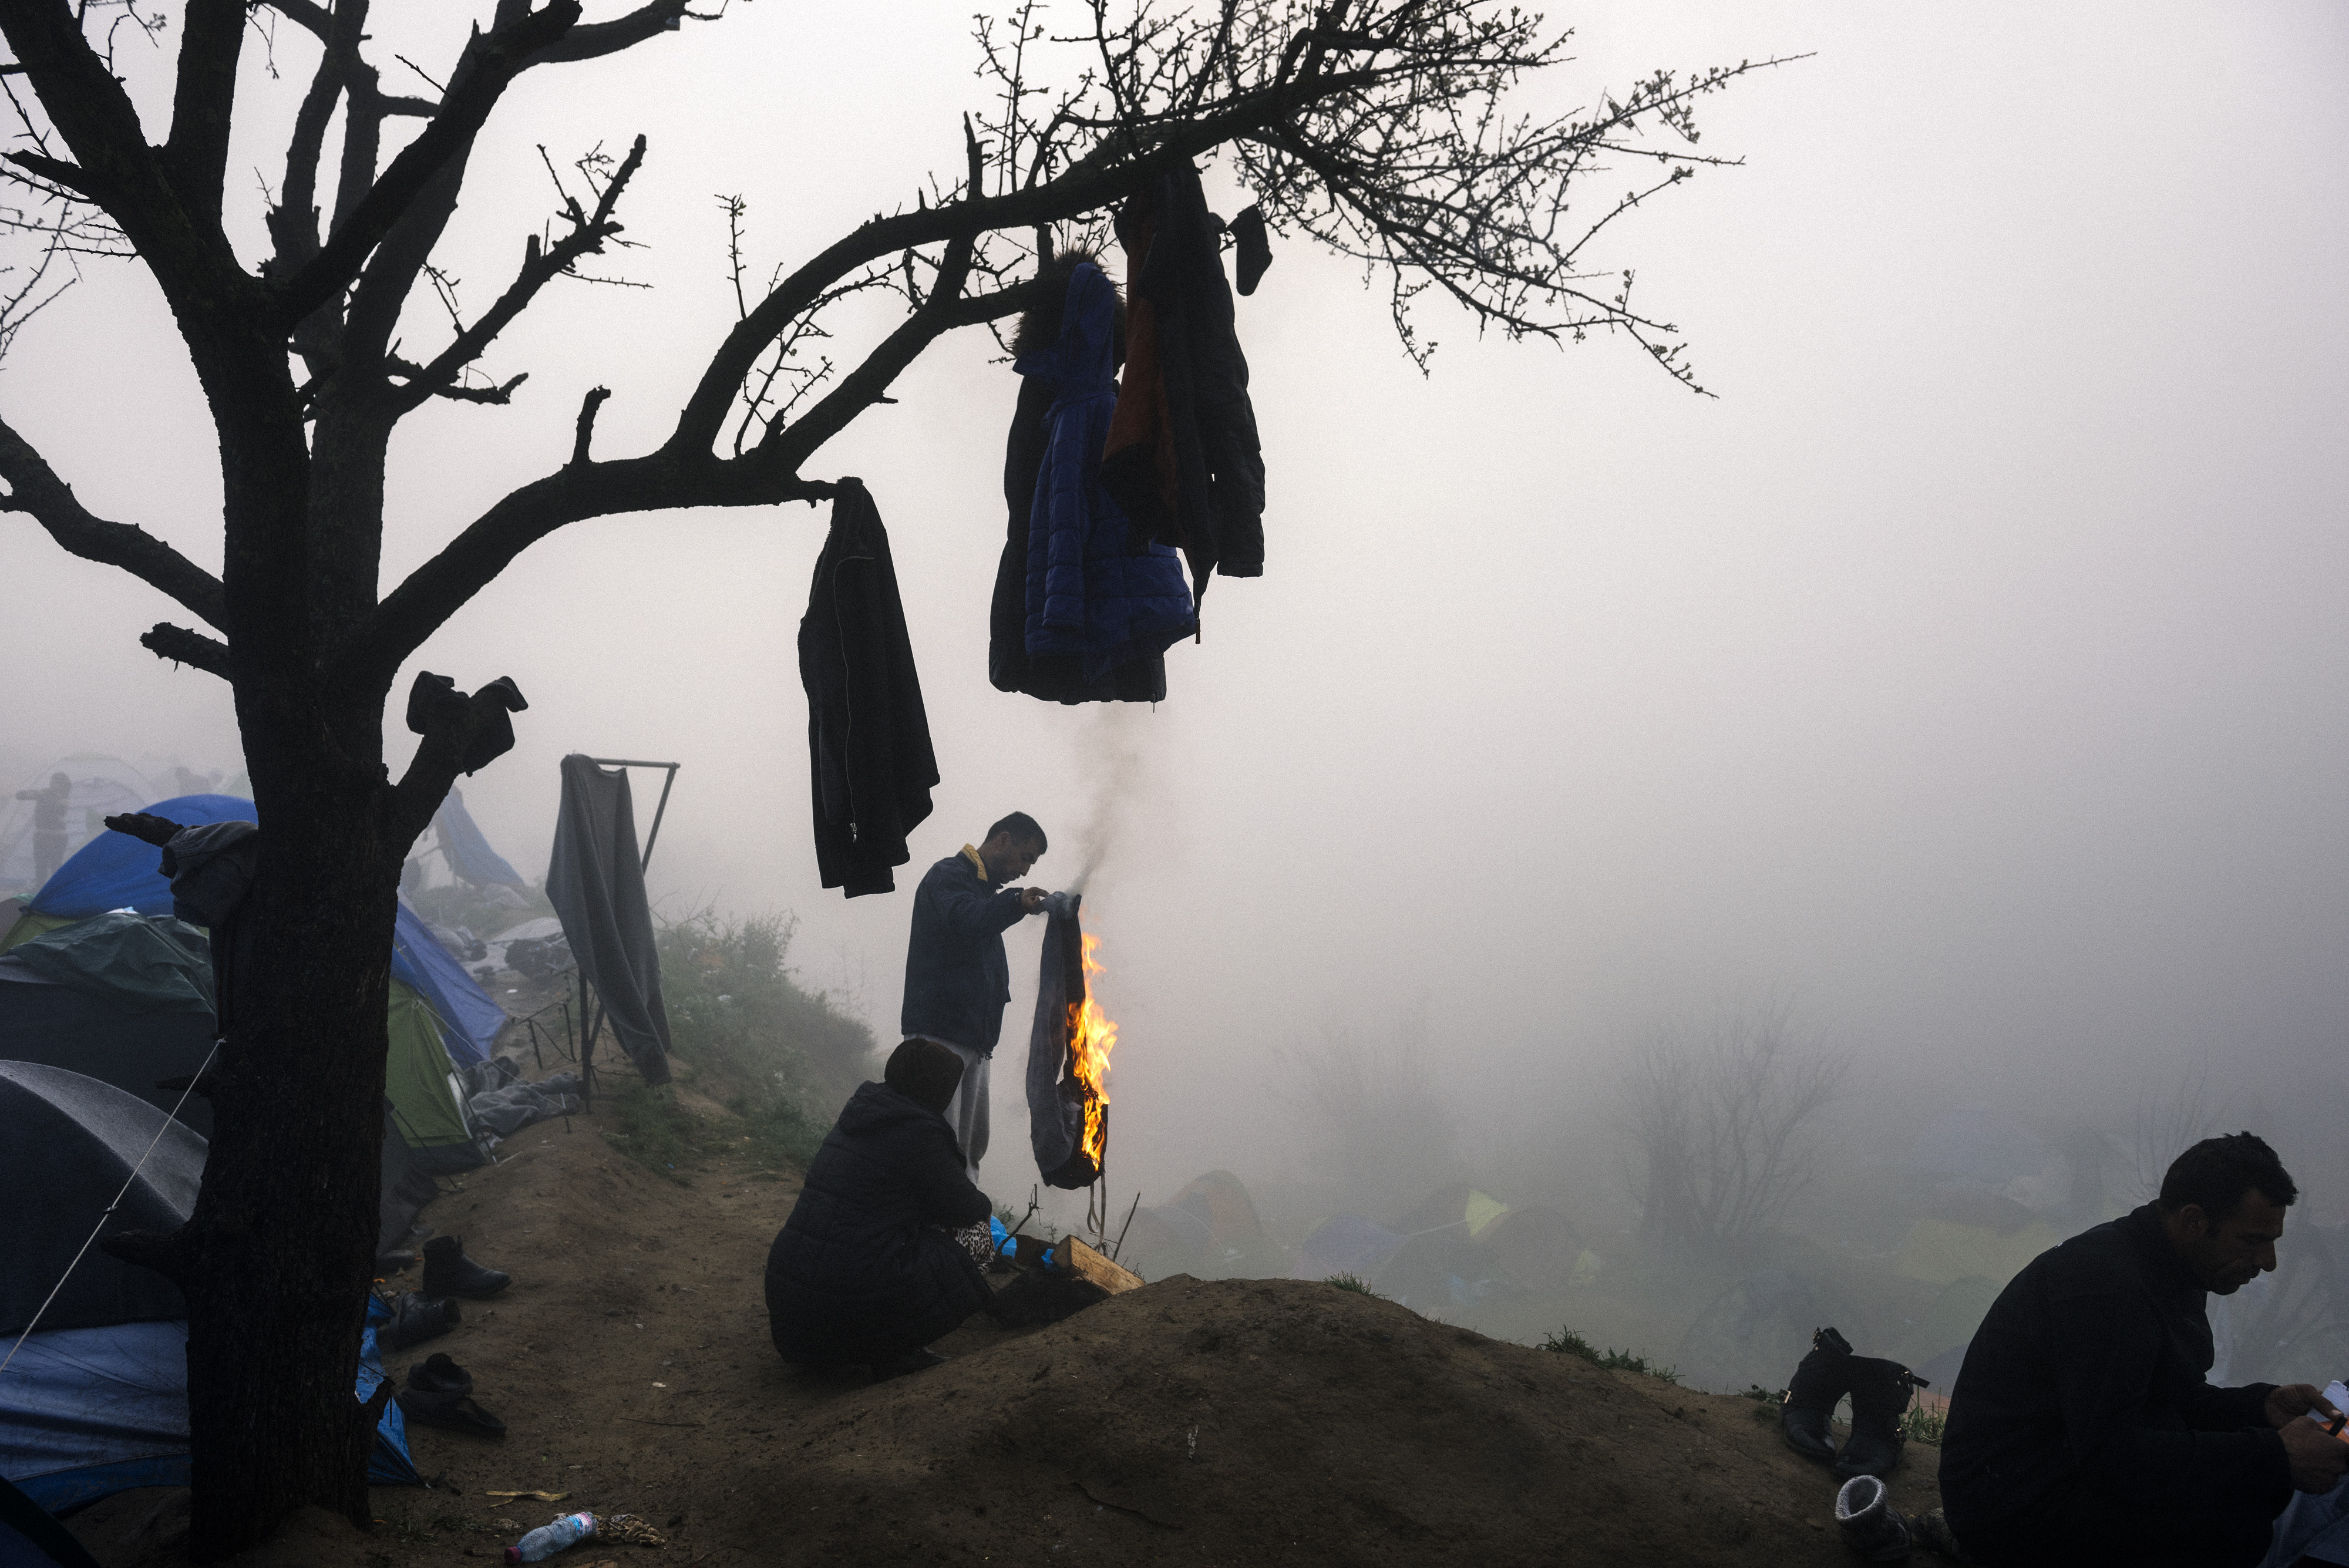 A man burns a pair of trousers to make it a bonfire during a foggy morning at a makeshift camp at the Greek-Macedonian border near the Greek village of Idomeni where thousands of refugees and migrants are stranded on March 8, 2016.